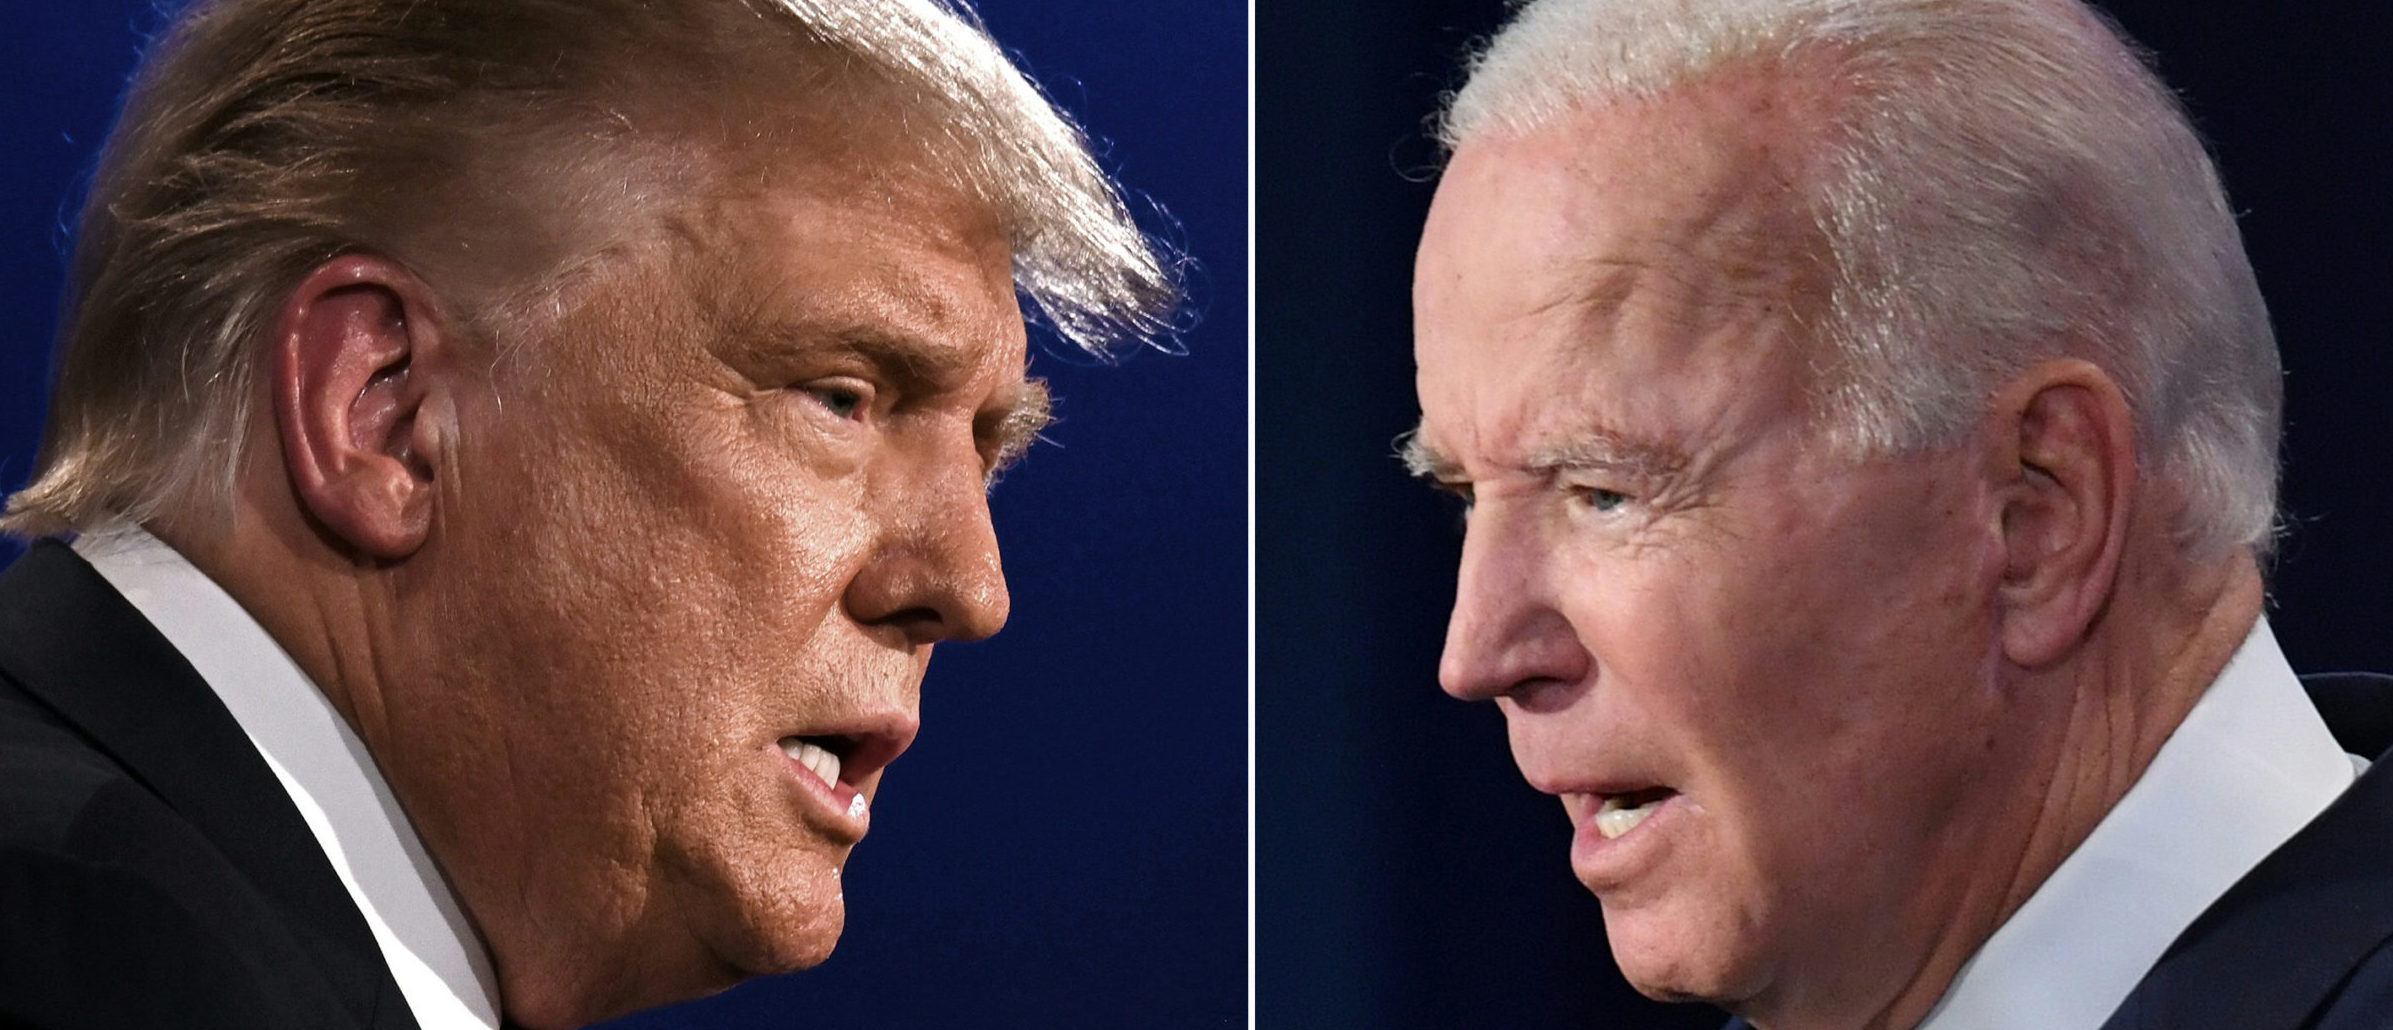 Biden Has Promised To Undo These Pro-Life Policies